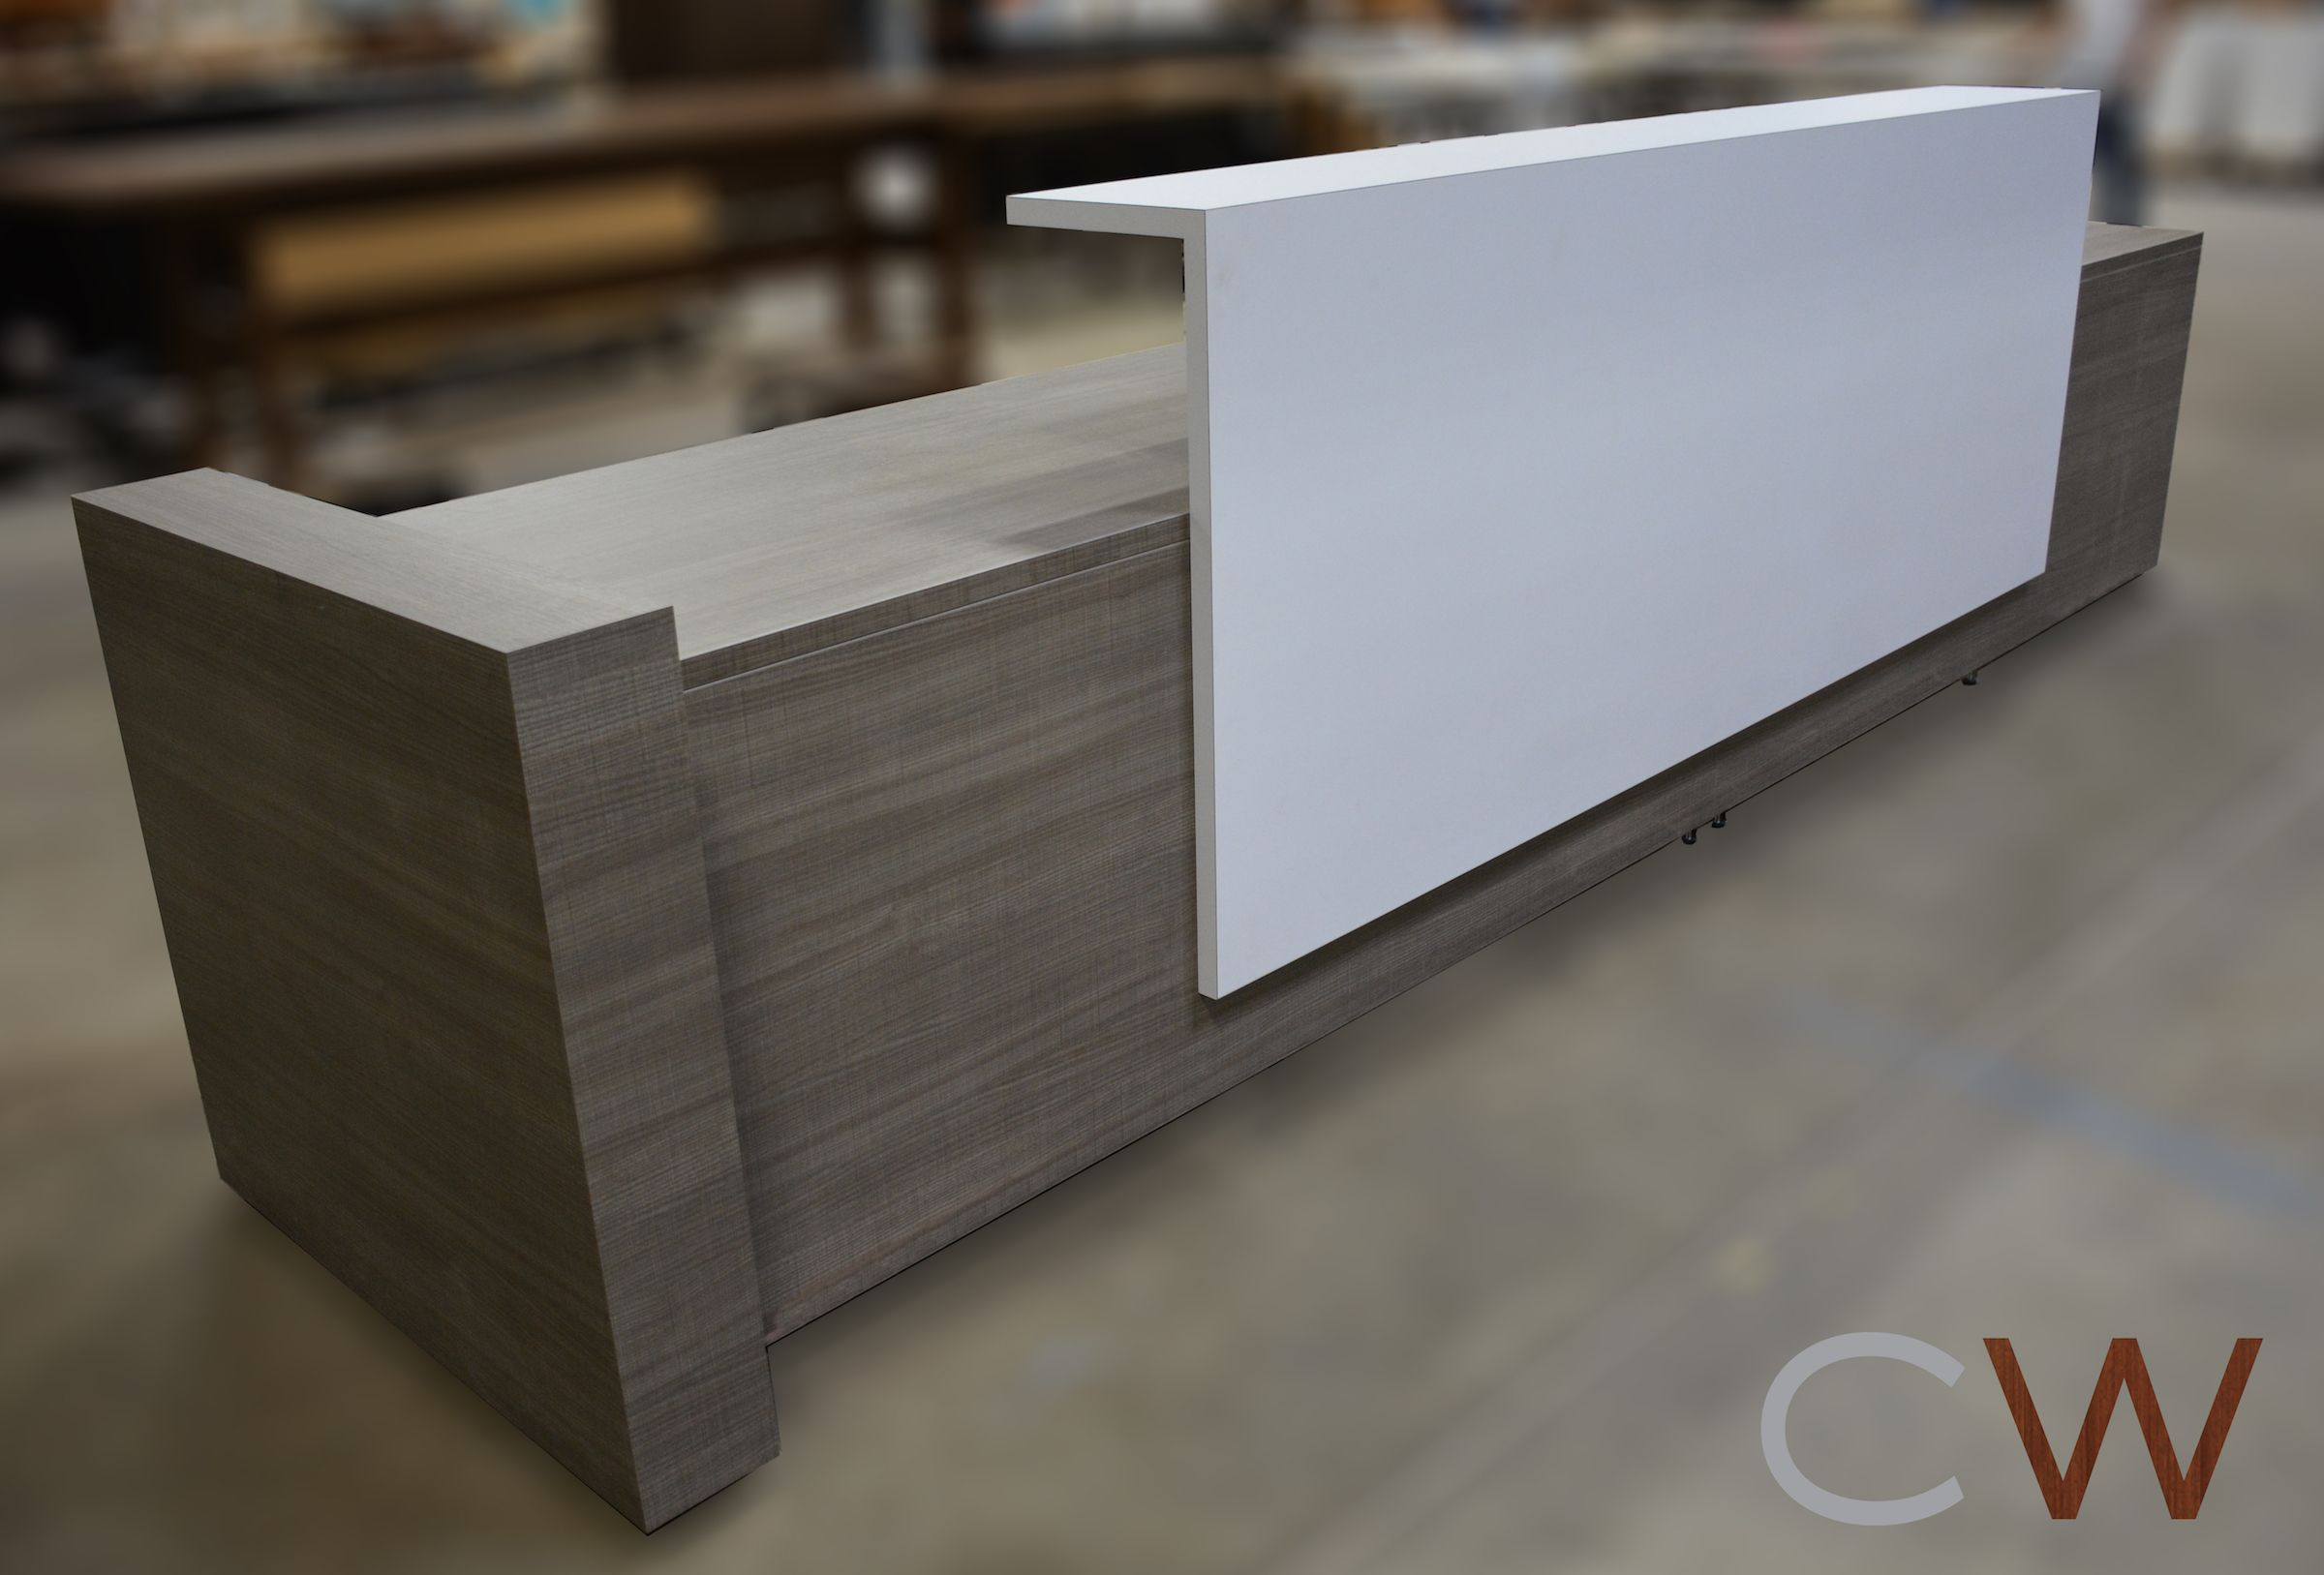 Laminate Is Budget Friendly, Durable, And Attractive This Reception Desk Is